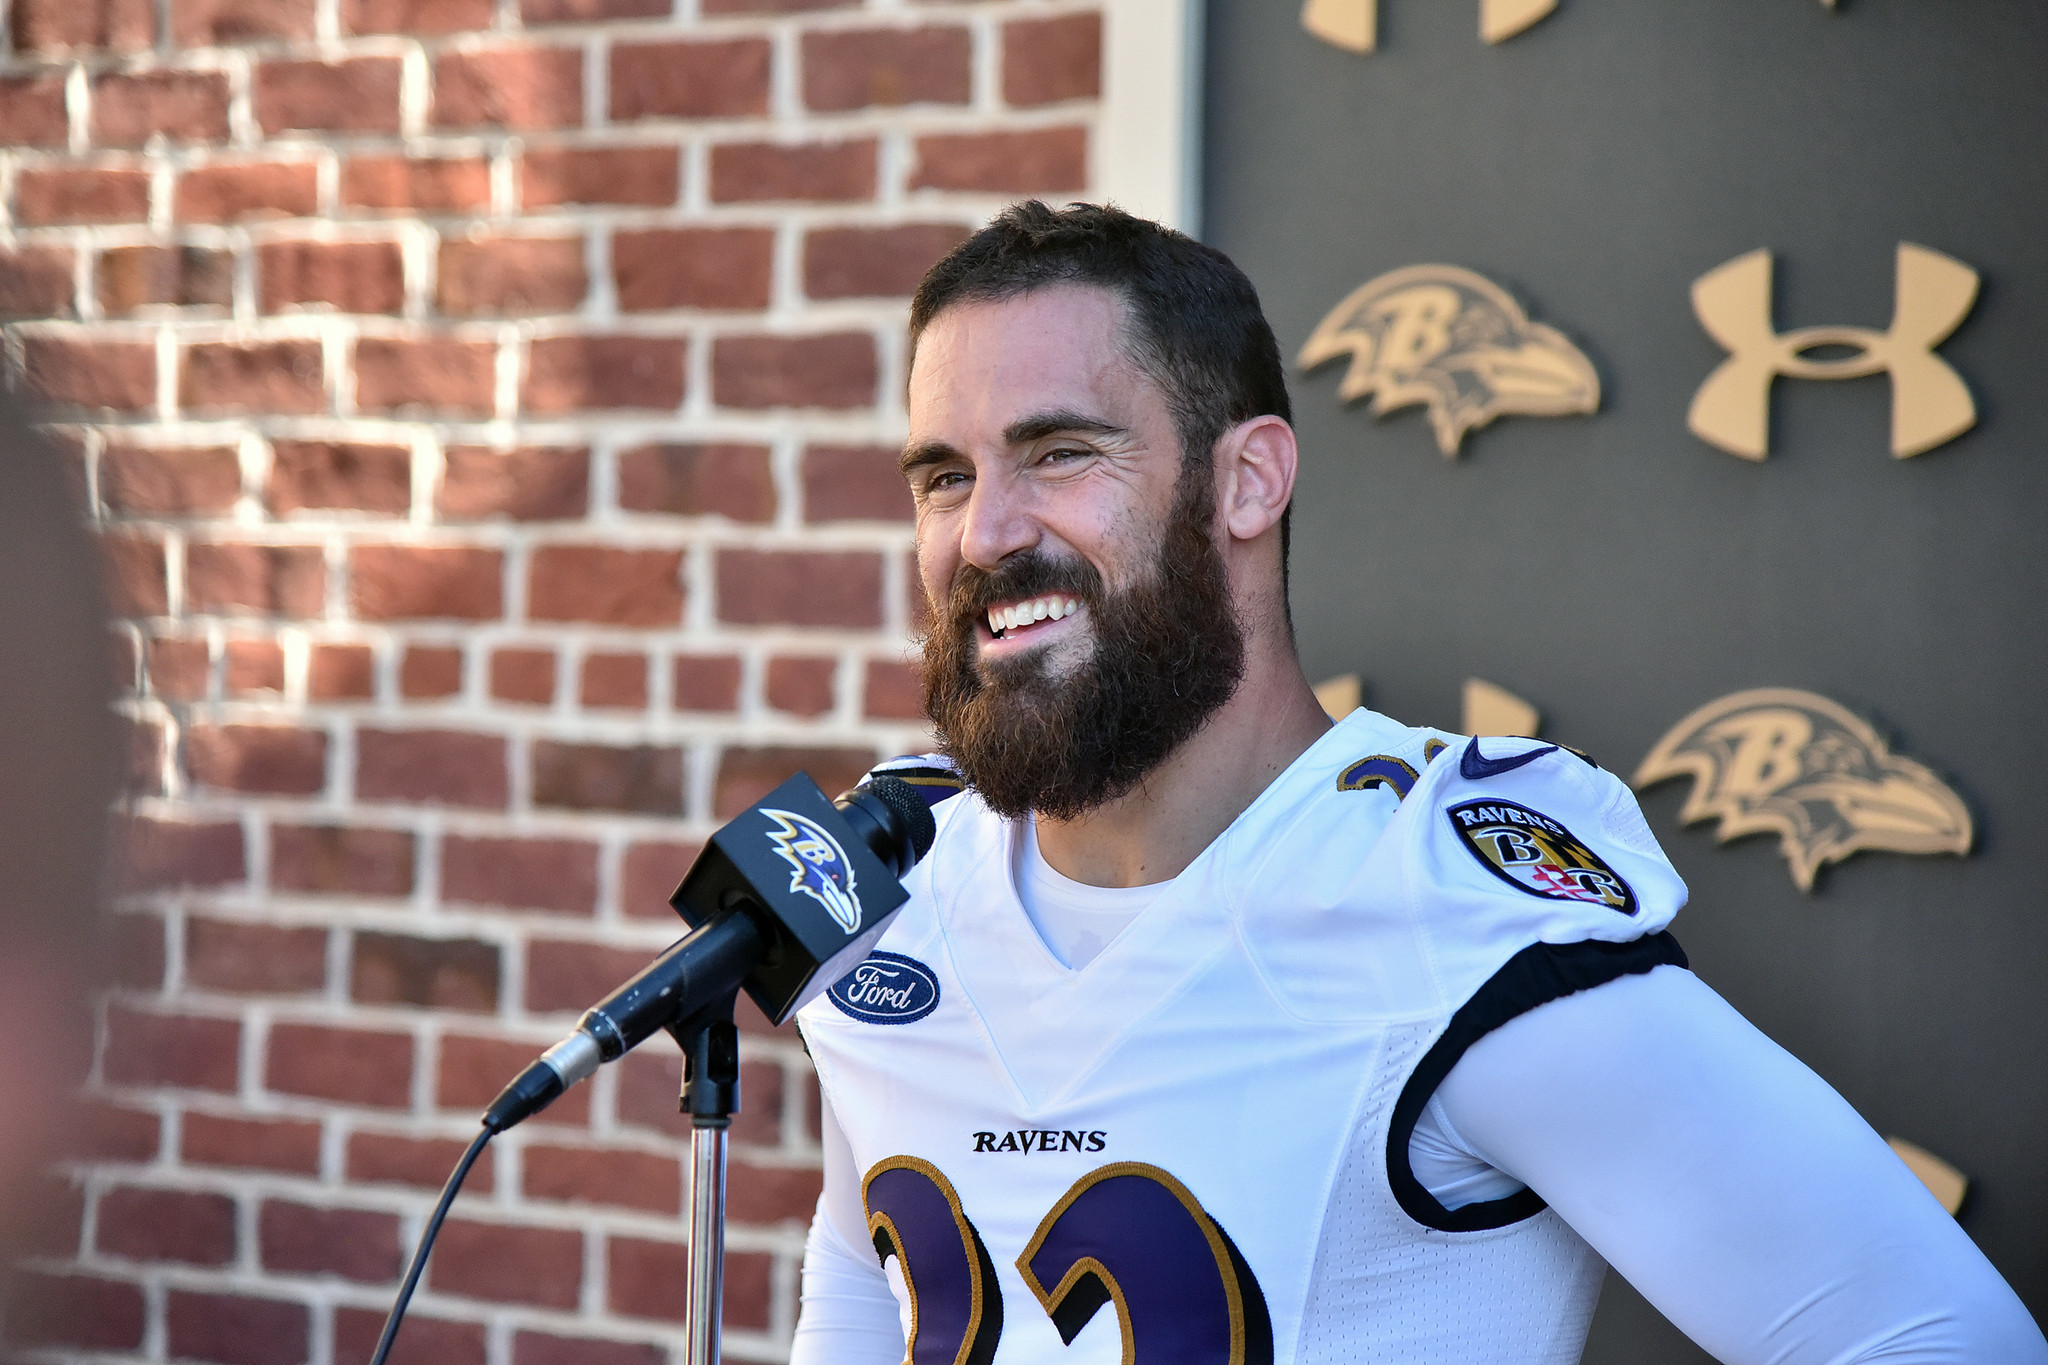 http://www.trbimg.com/img-57612963/turbine/bal-eric-weddle-on-being-a-baltimore-raven-20160615